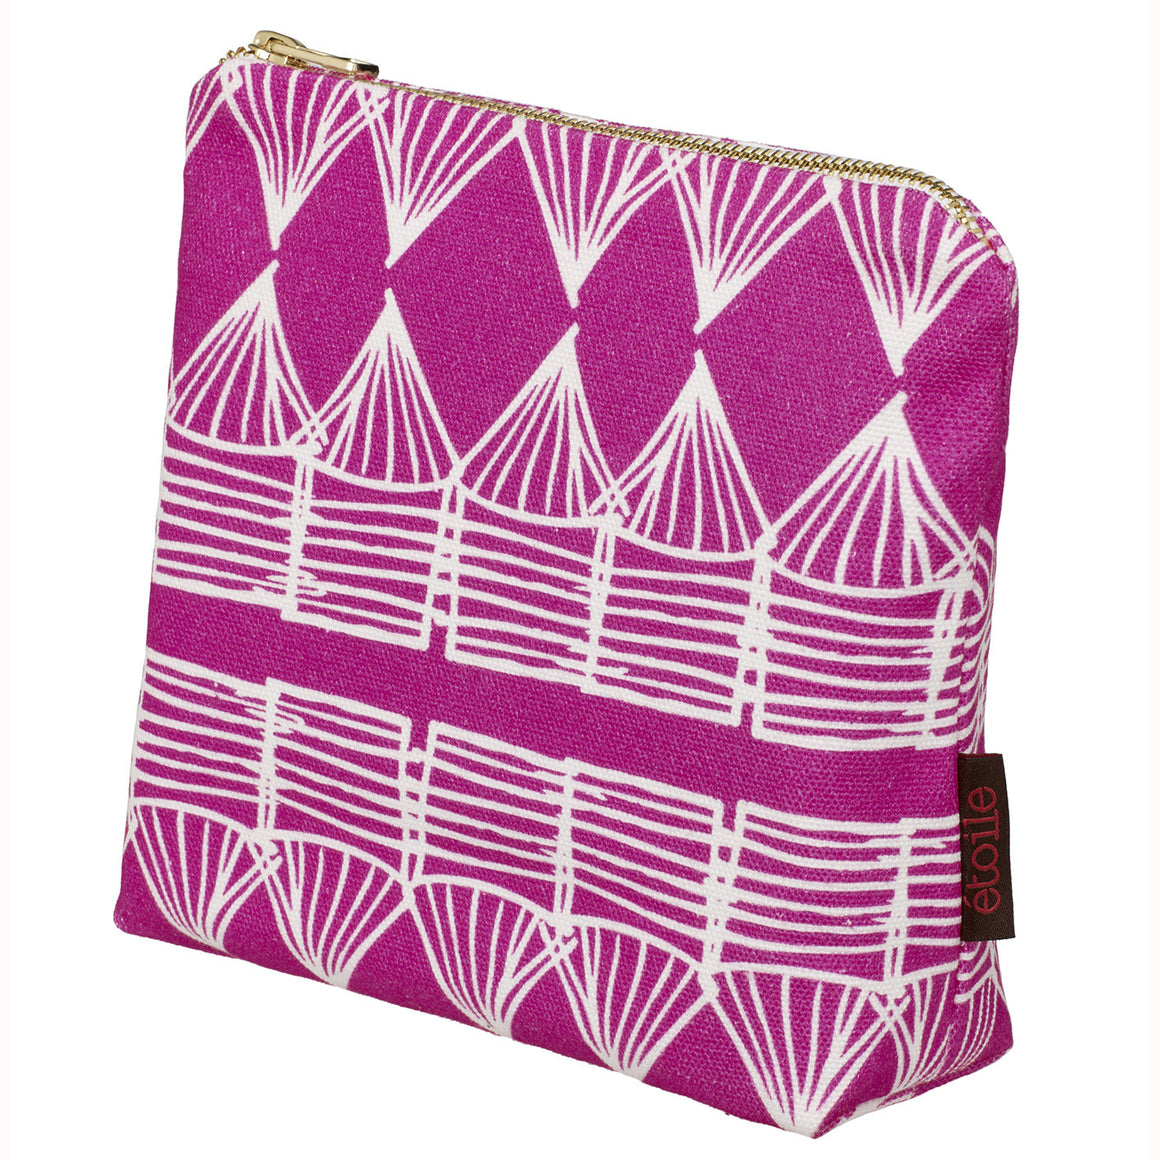 Tiki Huts Pattern Cotton Canvas Cosmetic Bag in Bright Fuchsia Pink